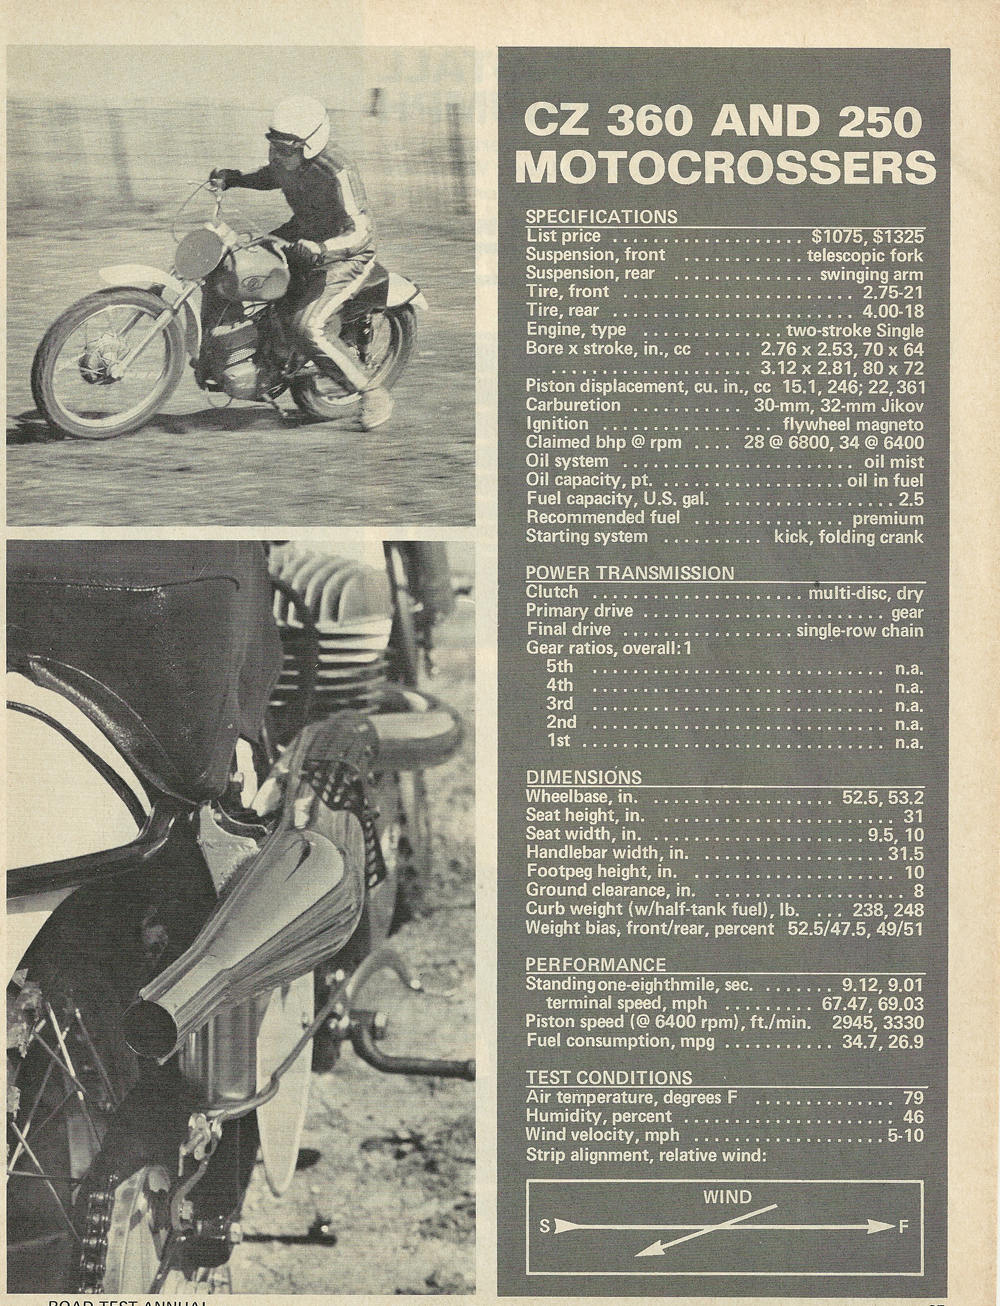 1969 CZ 360 and 250 Motocrossers road test 4.jpg